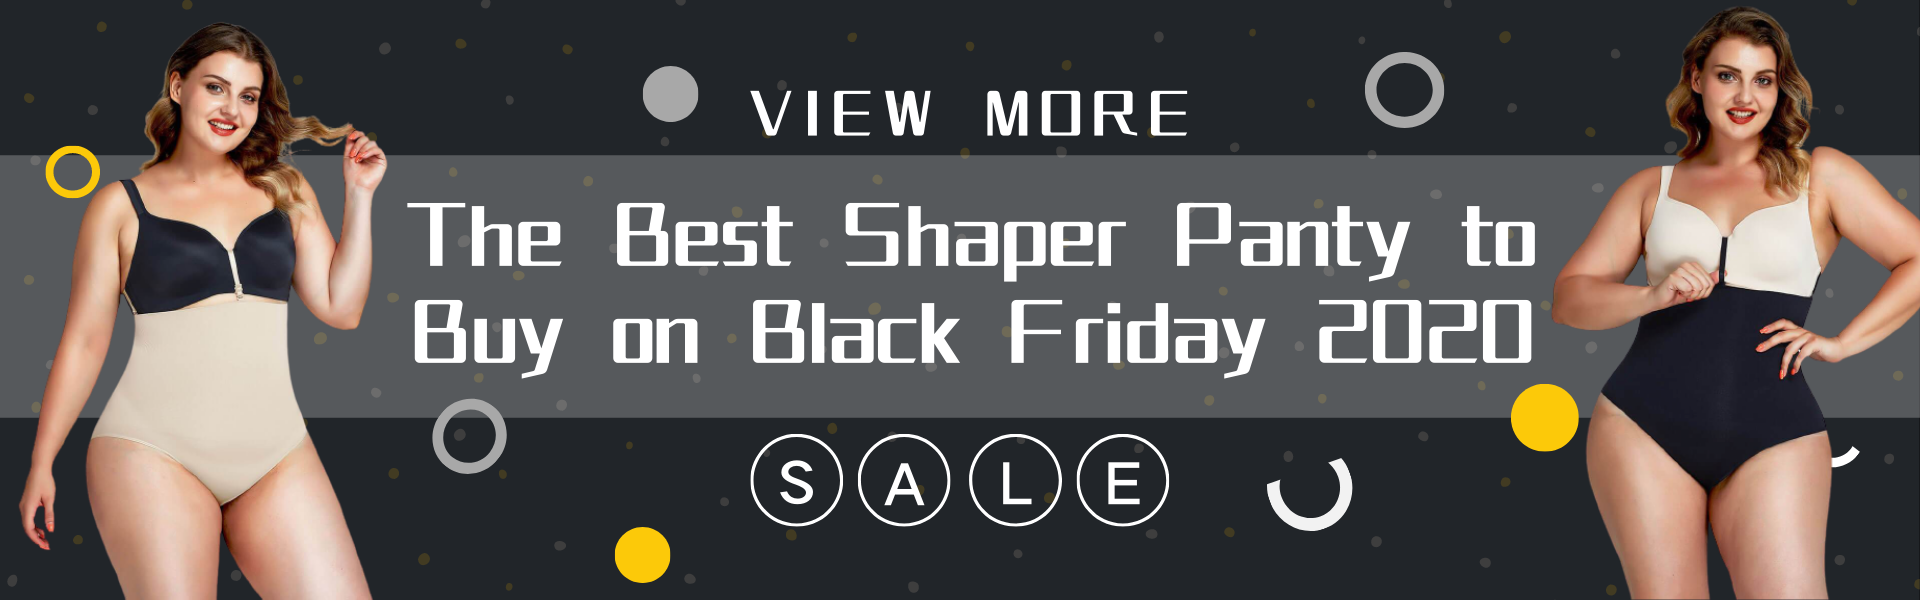 The Best Shaper Panty to Buy on Black Friday 2020